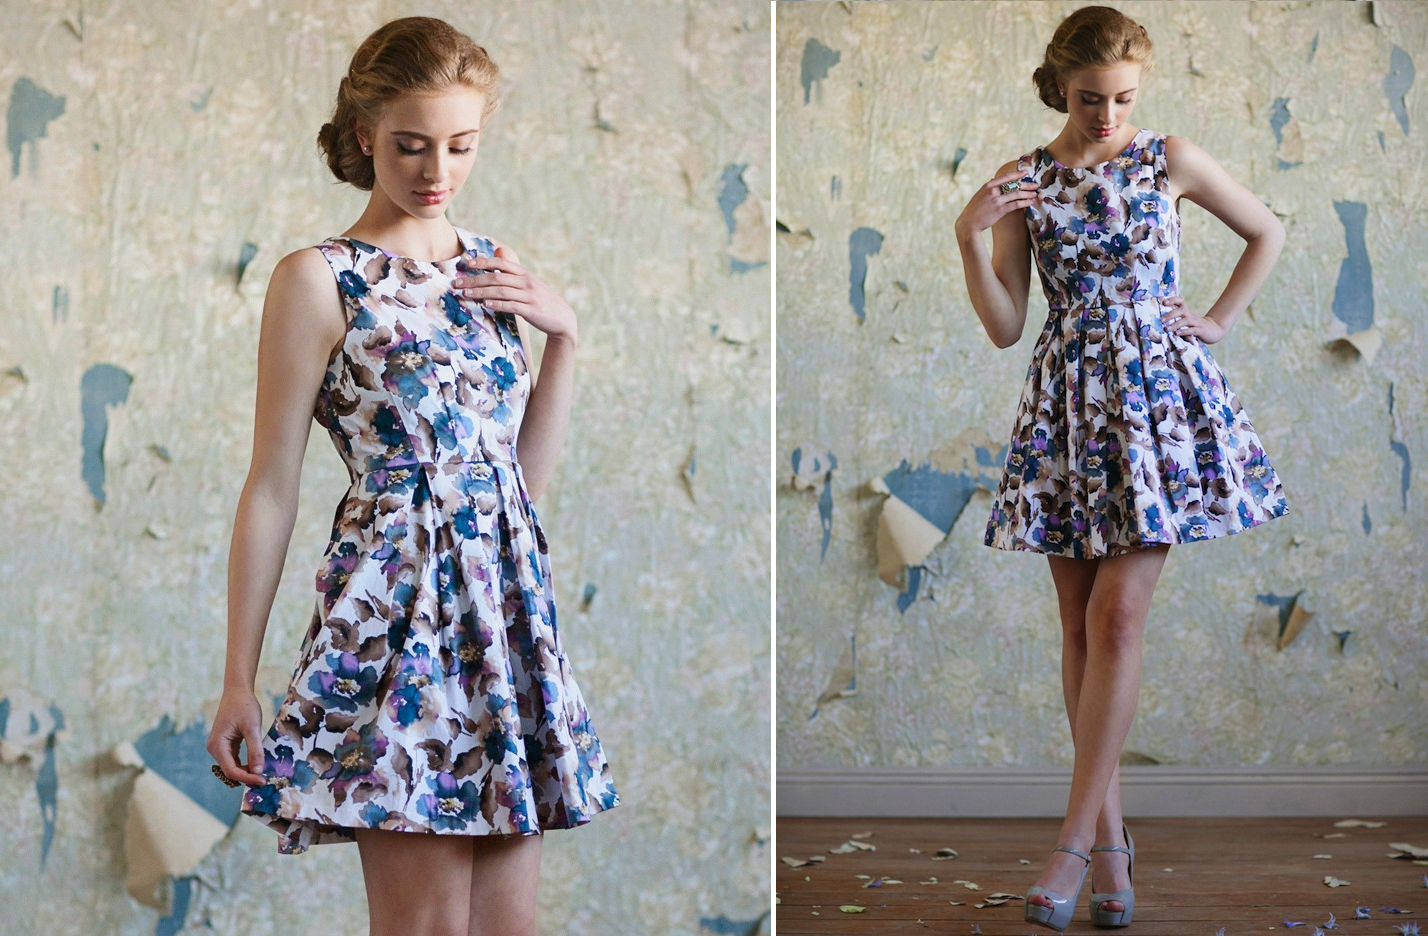 Floral party dress dress yp images of floral party dresses reikian izmirmasajfo